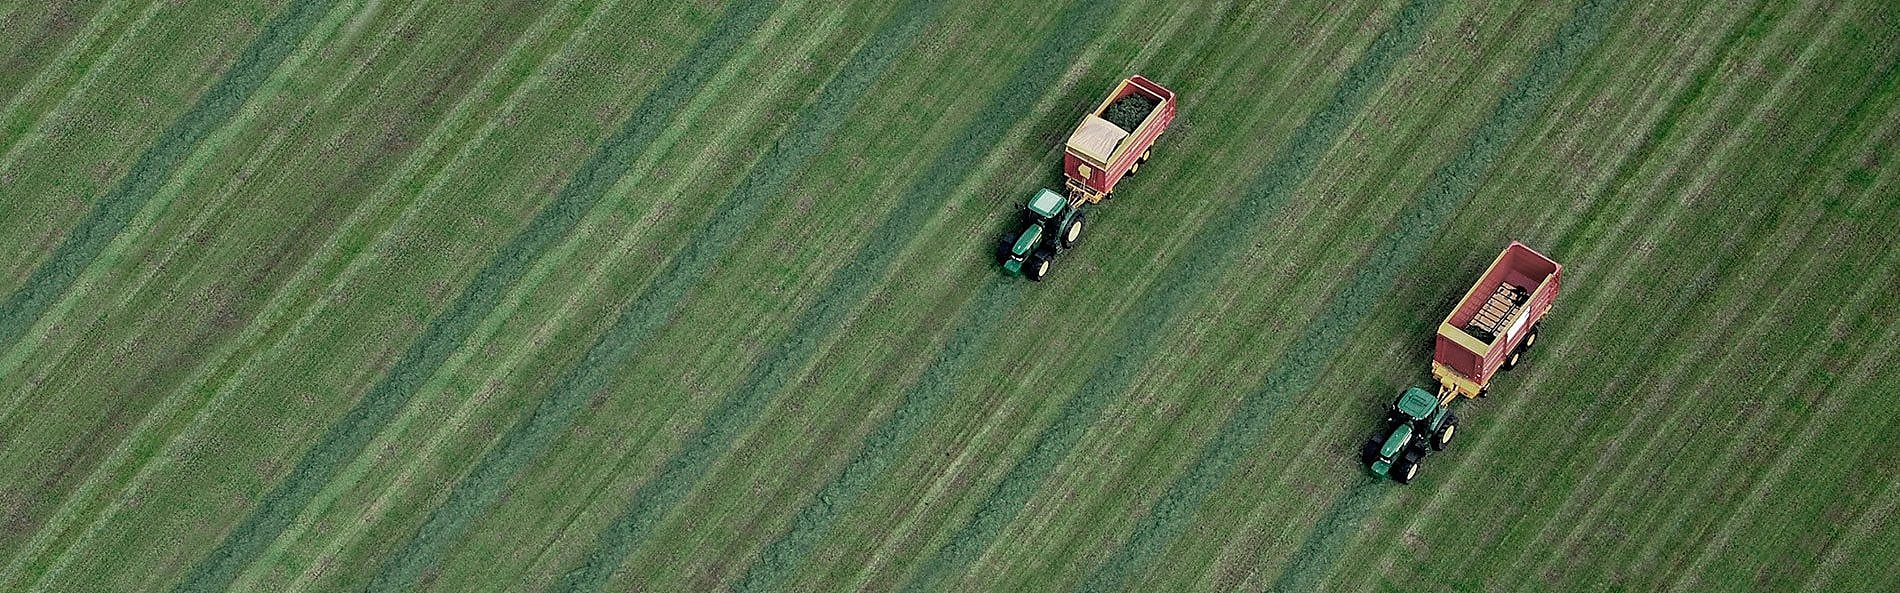 two tractors in a green field pictured from above